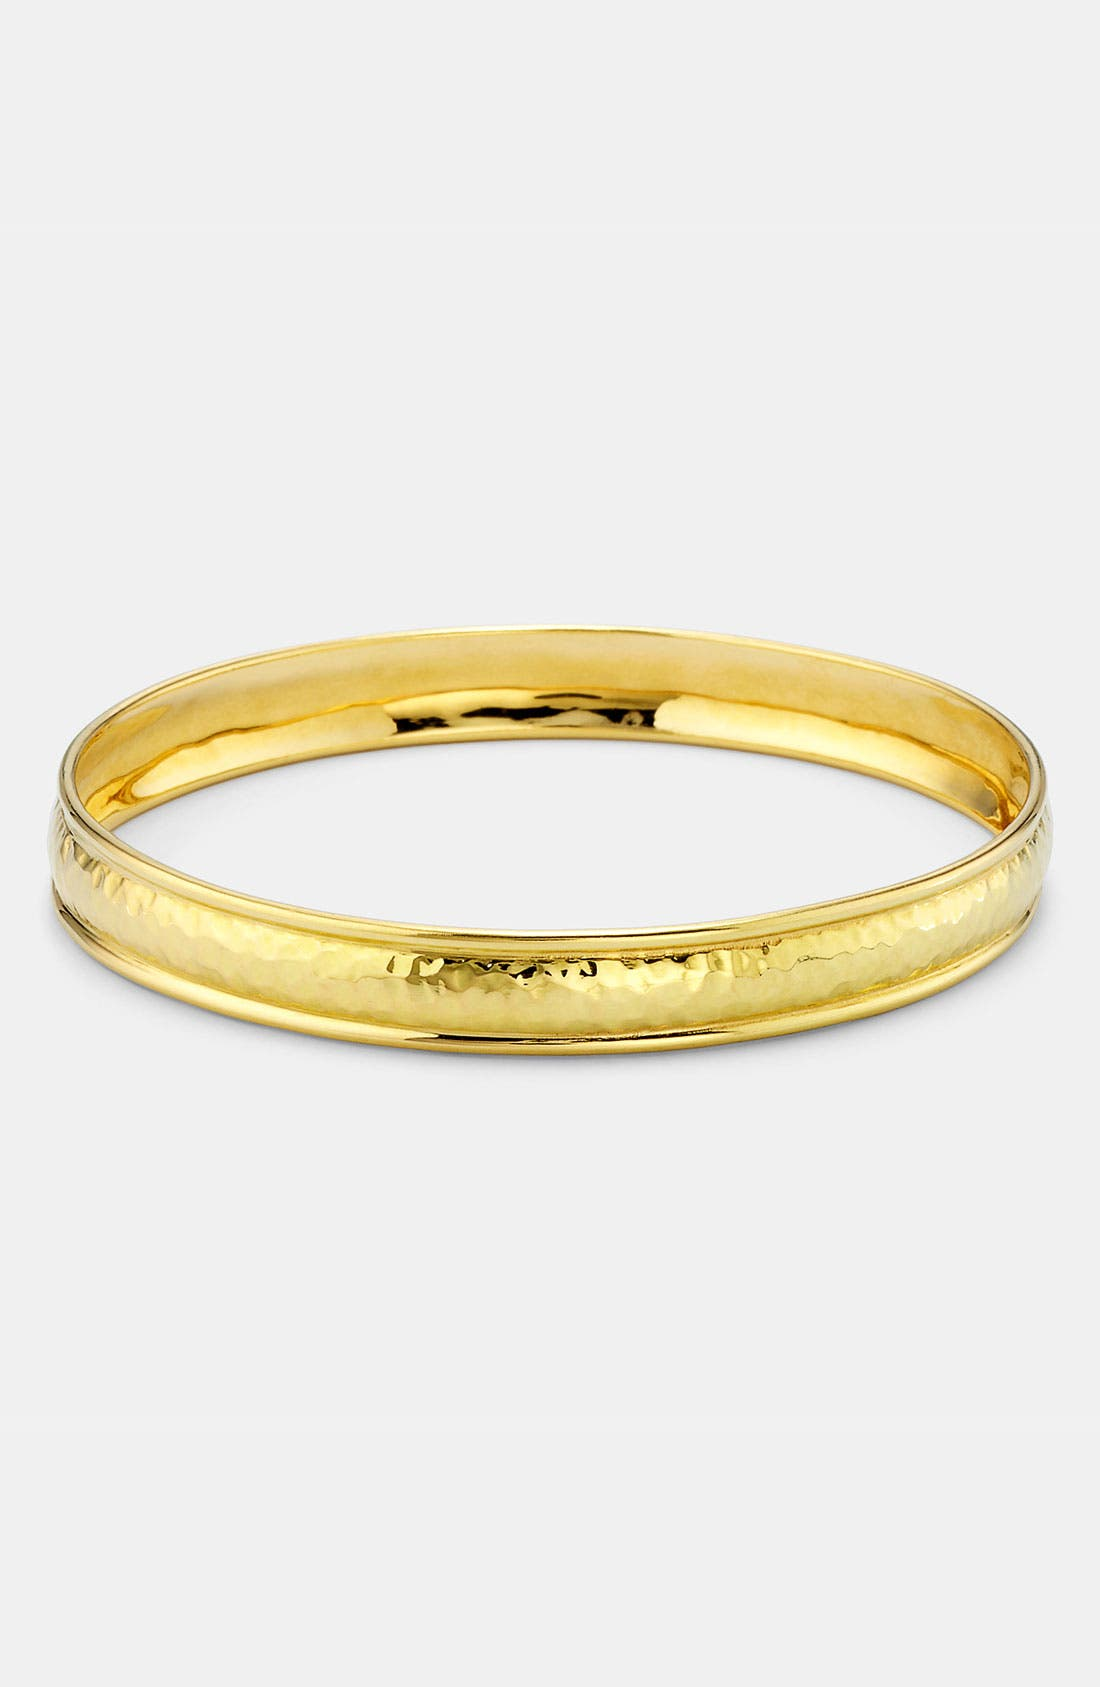 Main Image - Ippolita 'Crinkle' Skinny Hammered 18k Gold Bangle